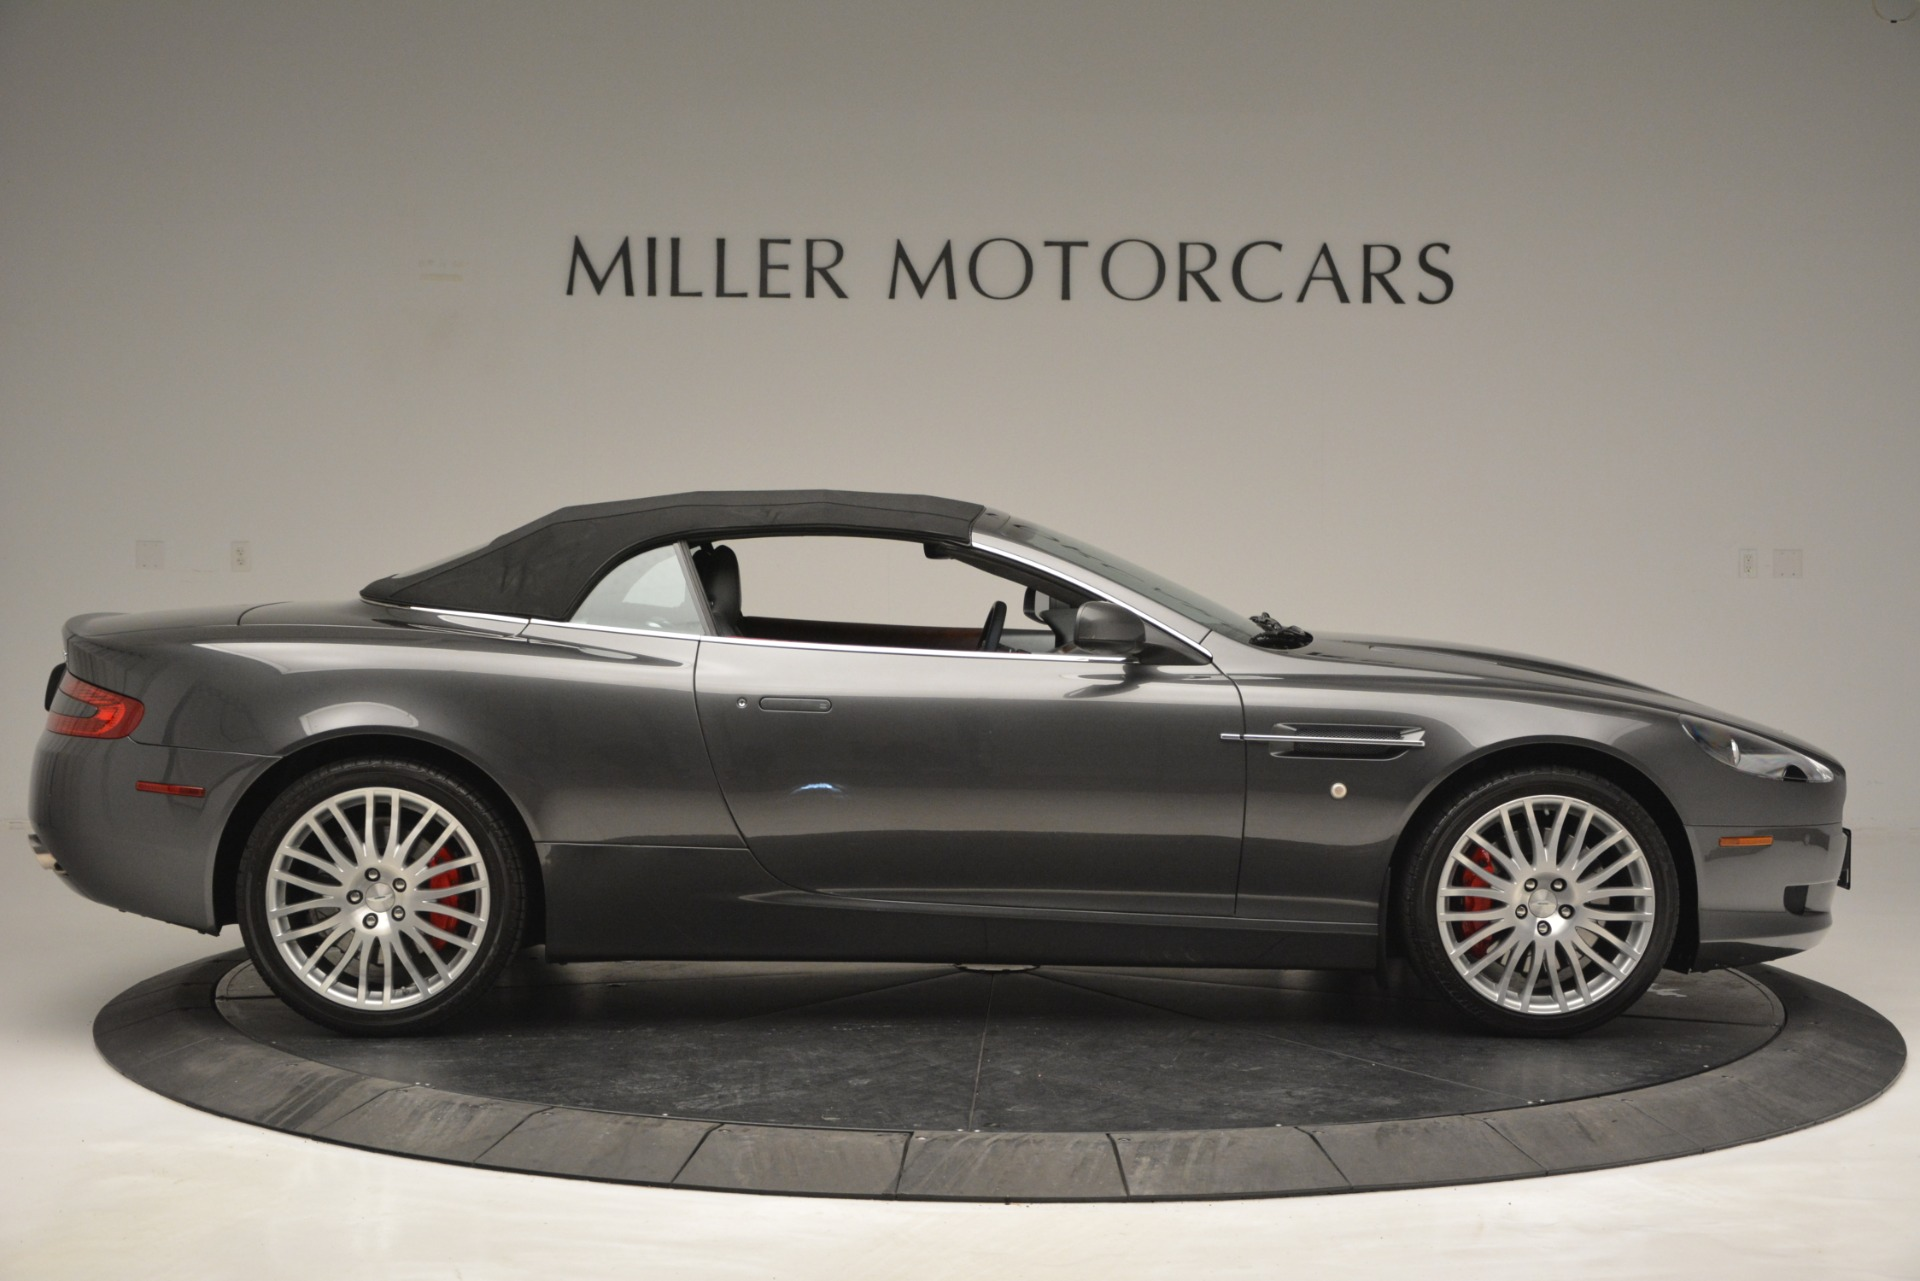 Used 2009 Aston Martin DB9 Convertible For Sale In Westport, CT 2930_p13